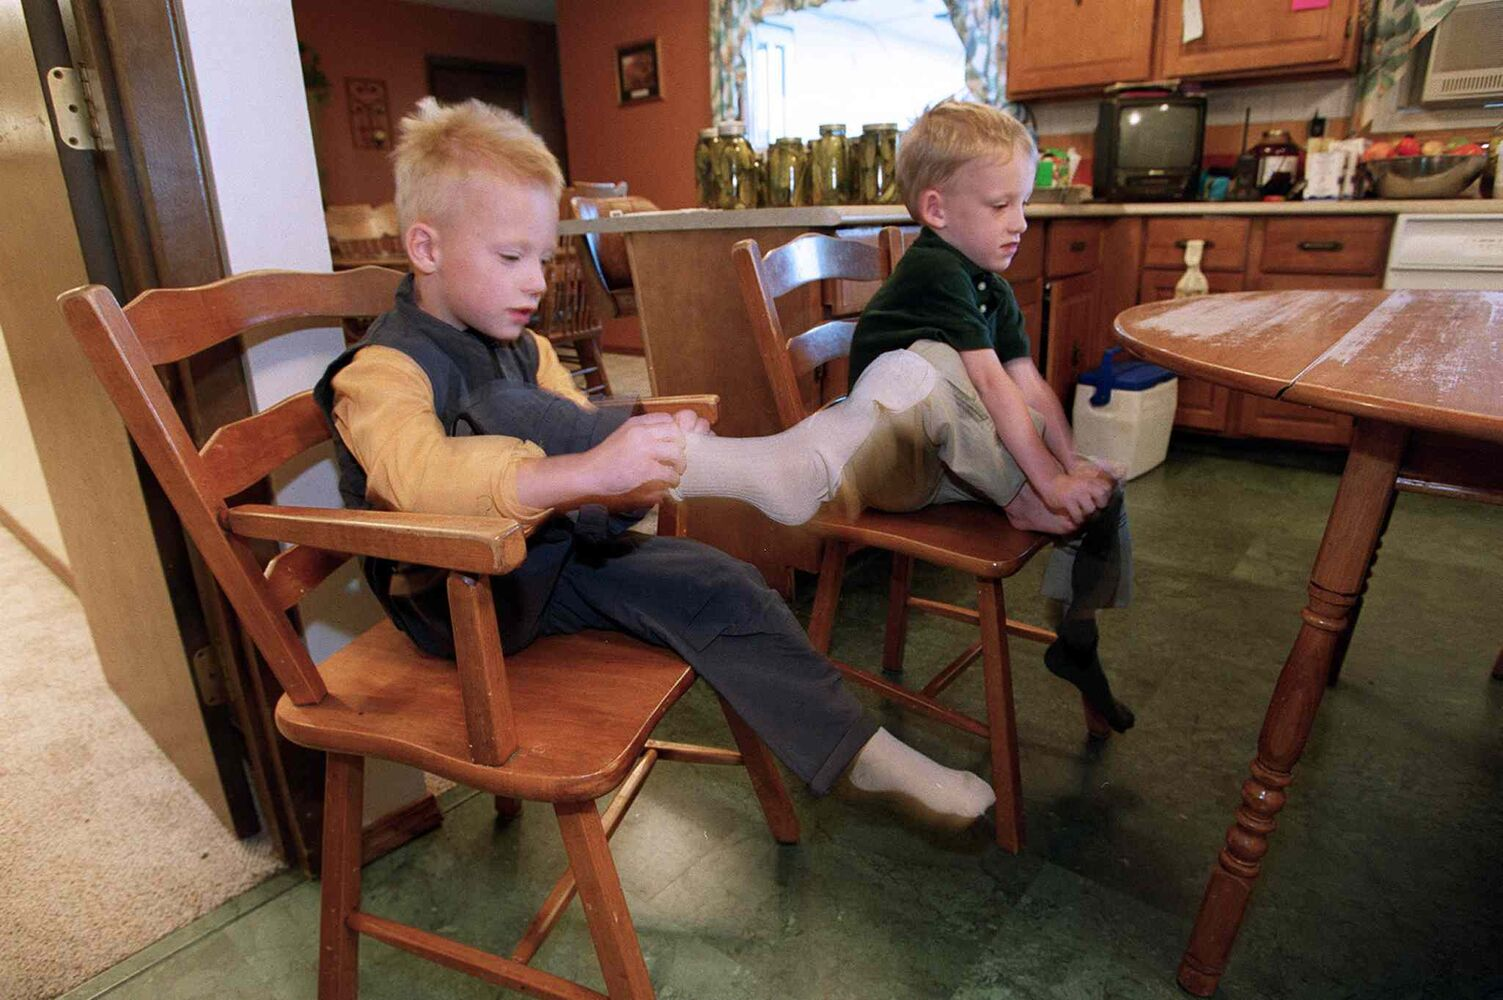 Sitting at the breakfast table, Myles, left, and Greg get dressed for their first day of kindergarten at R.J. Waugh Elementary School. (JEFF DE BOOY / WINNIPEG FREE PRESS FILES)